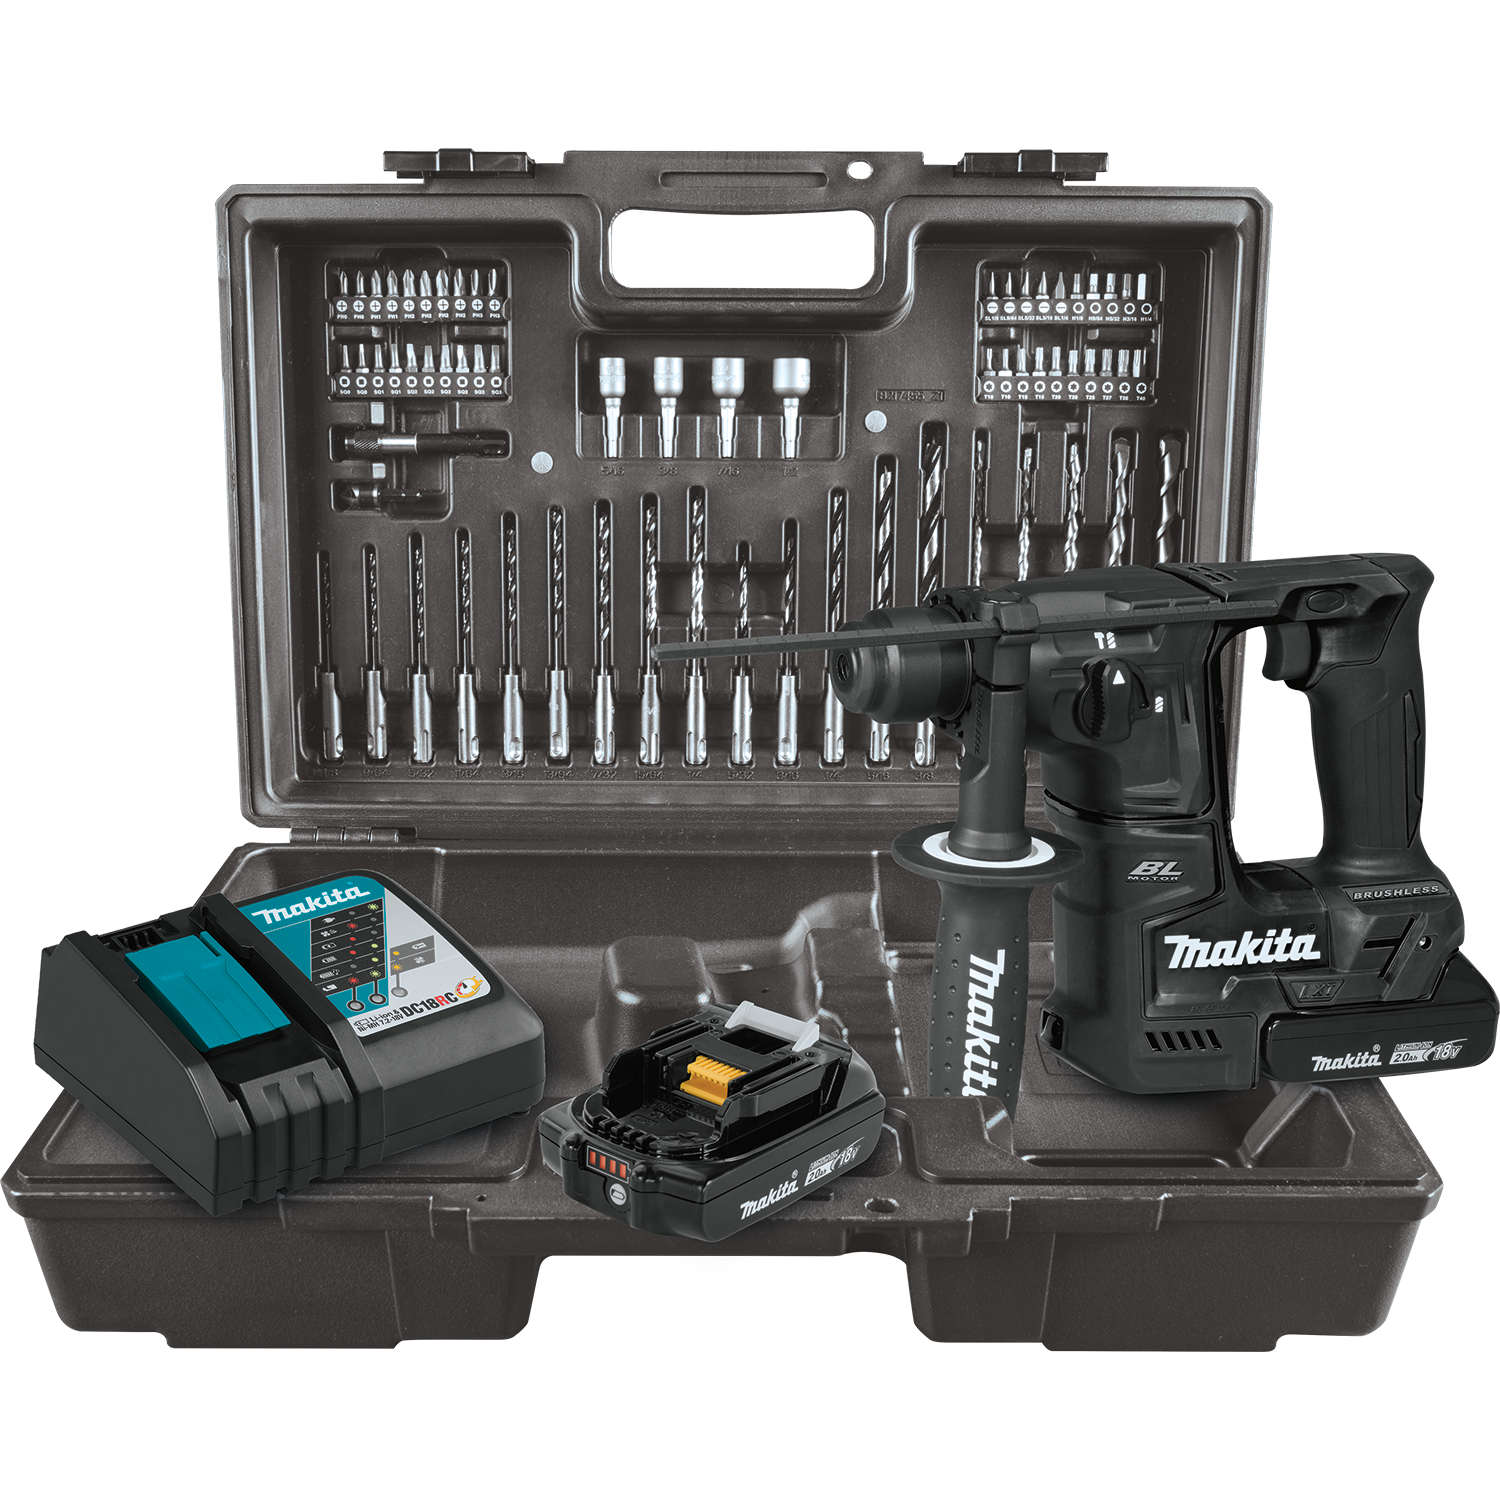 Drill clipart power tool. Makita usa product details